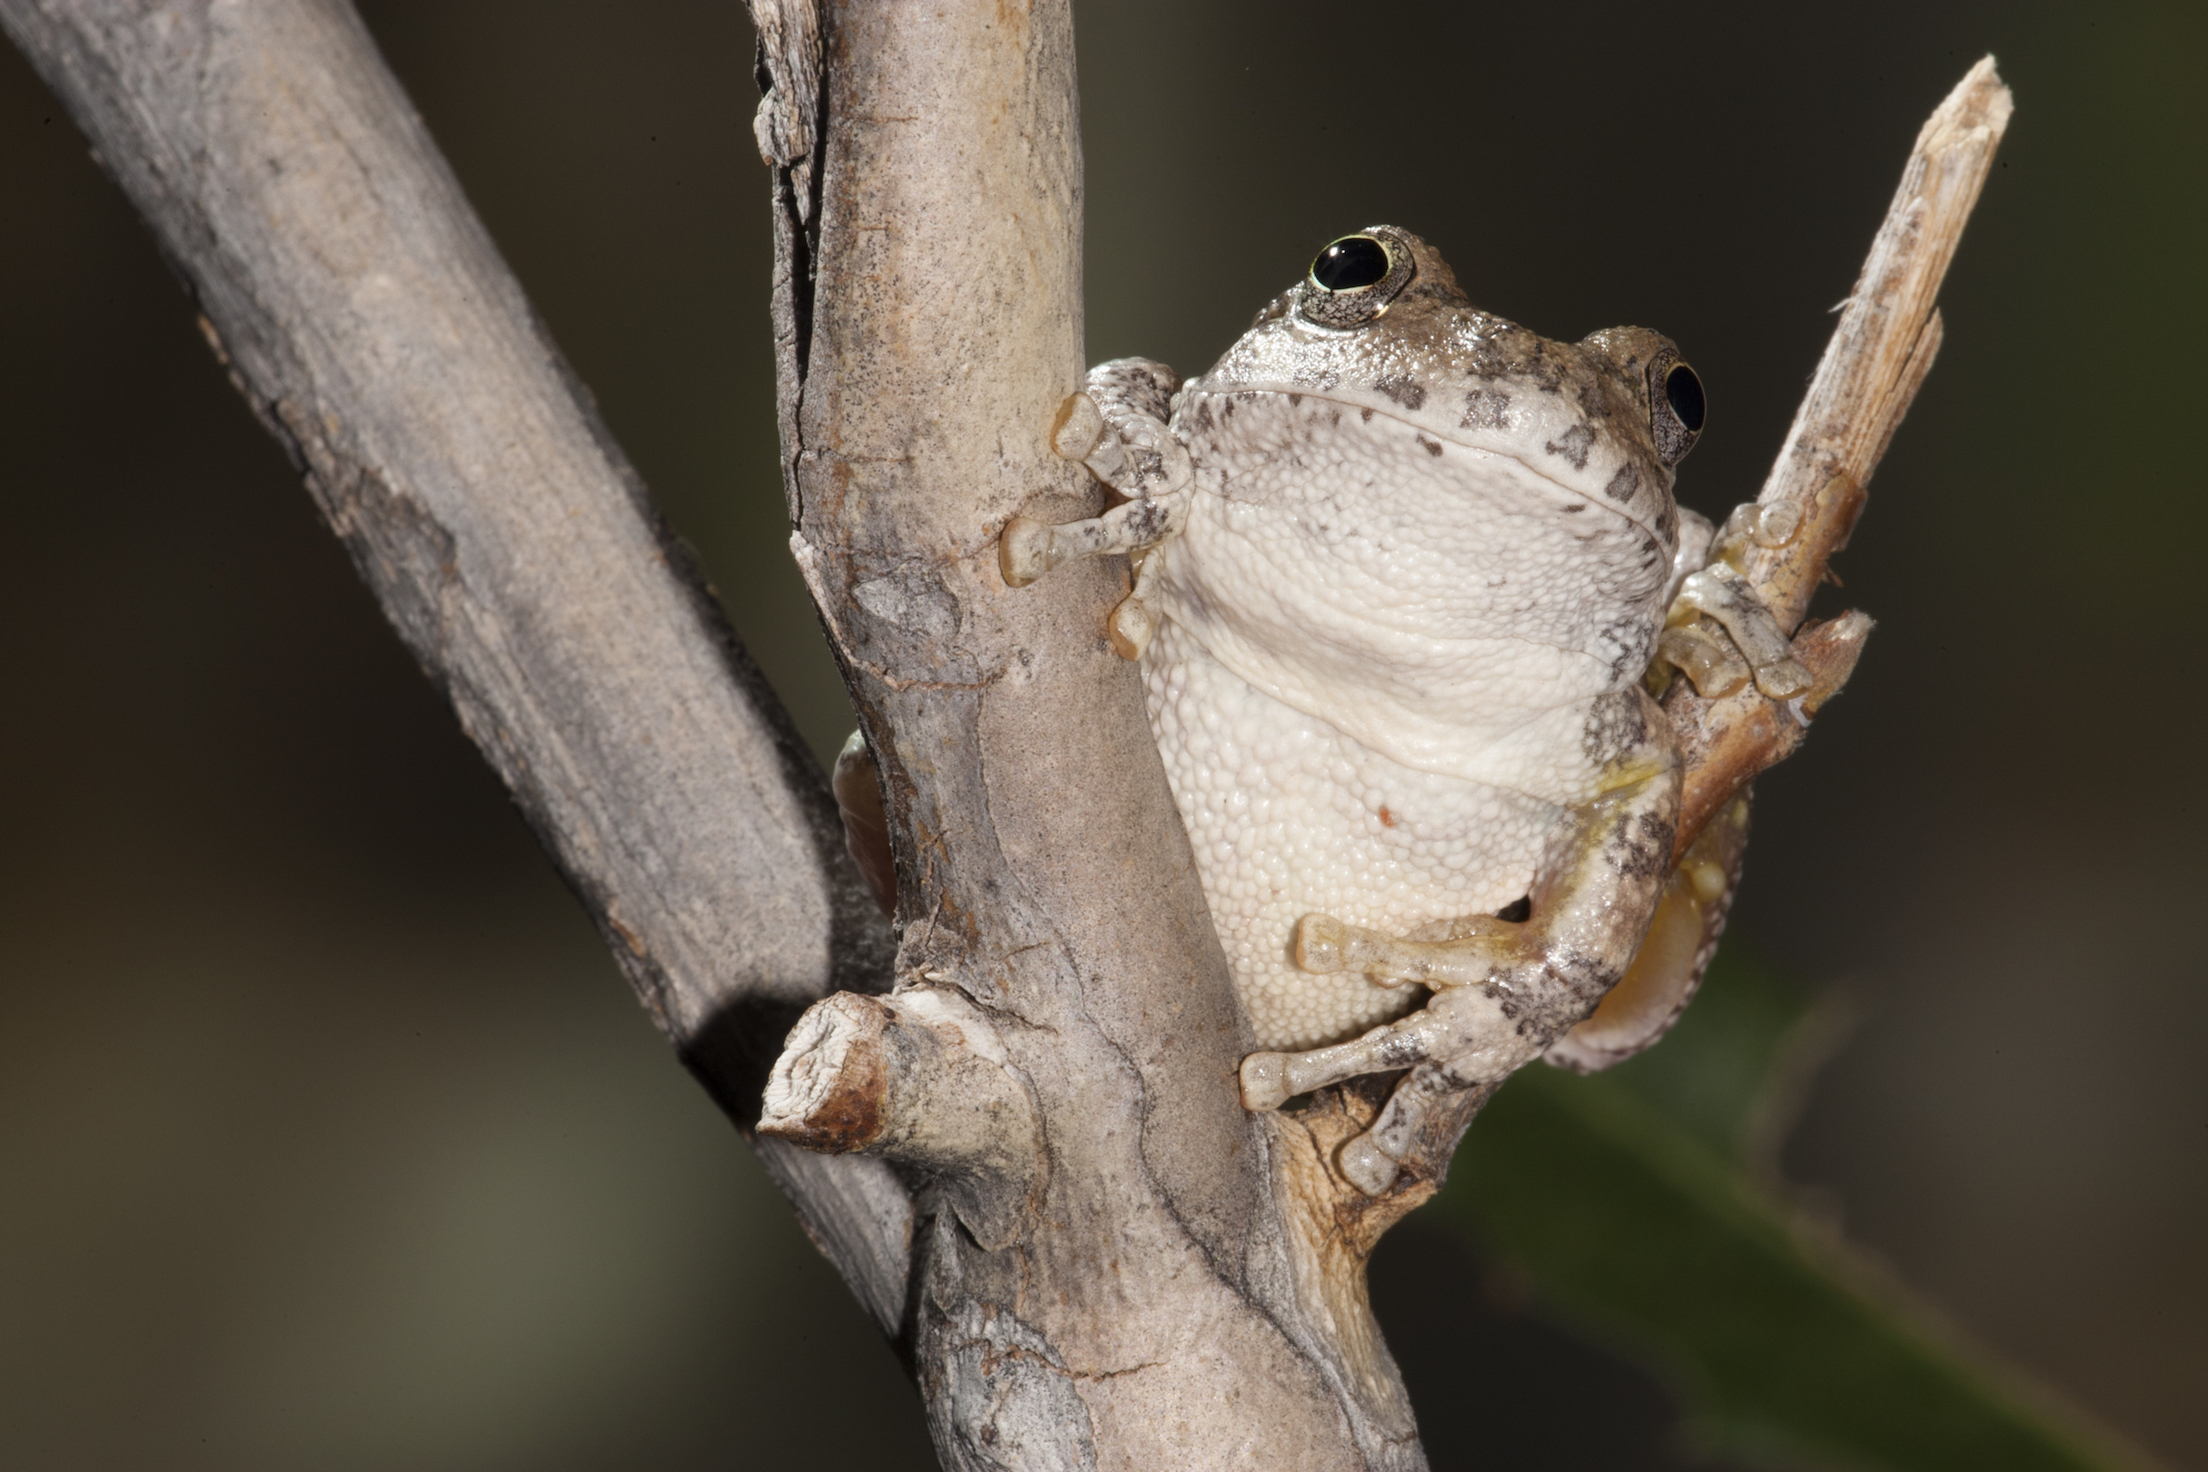 Canyon Tree Frogs are an enigmatic desert amphibian of the South West. A deep canyon shelters them in Bear's Ears National Monument.